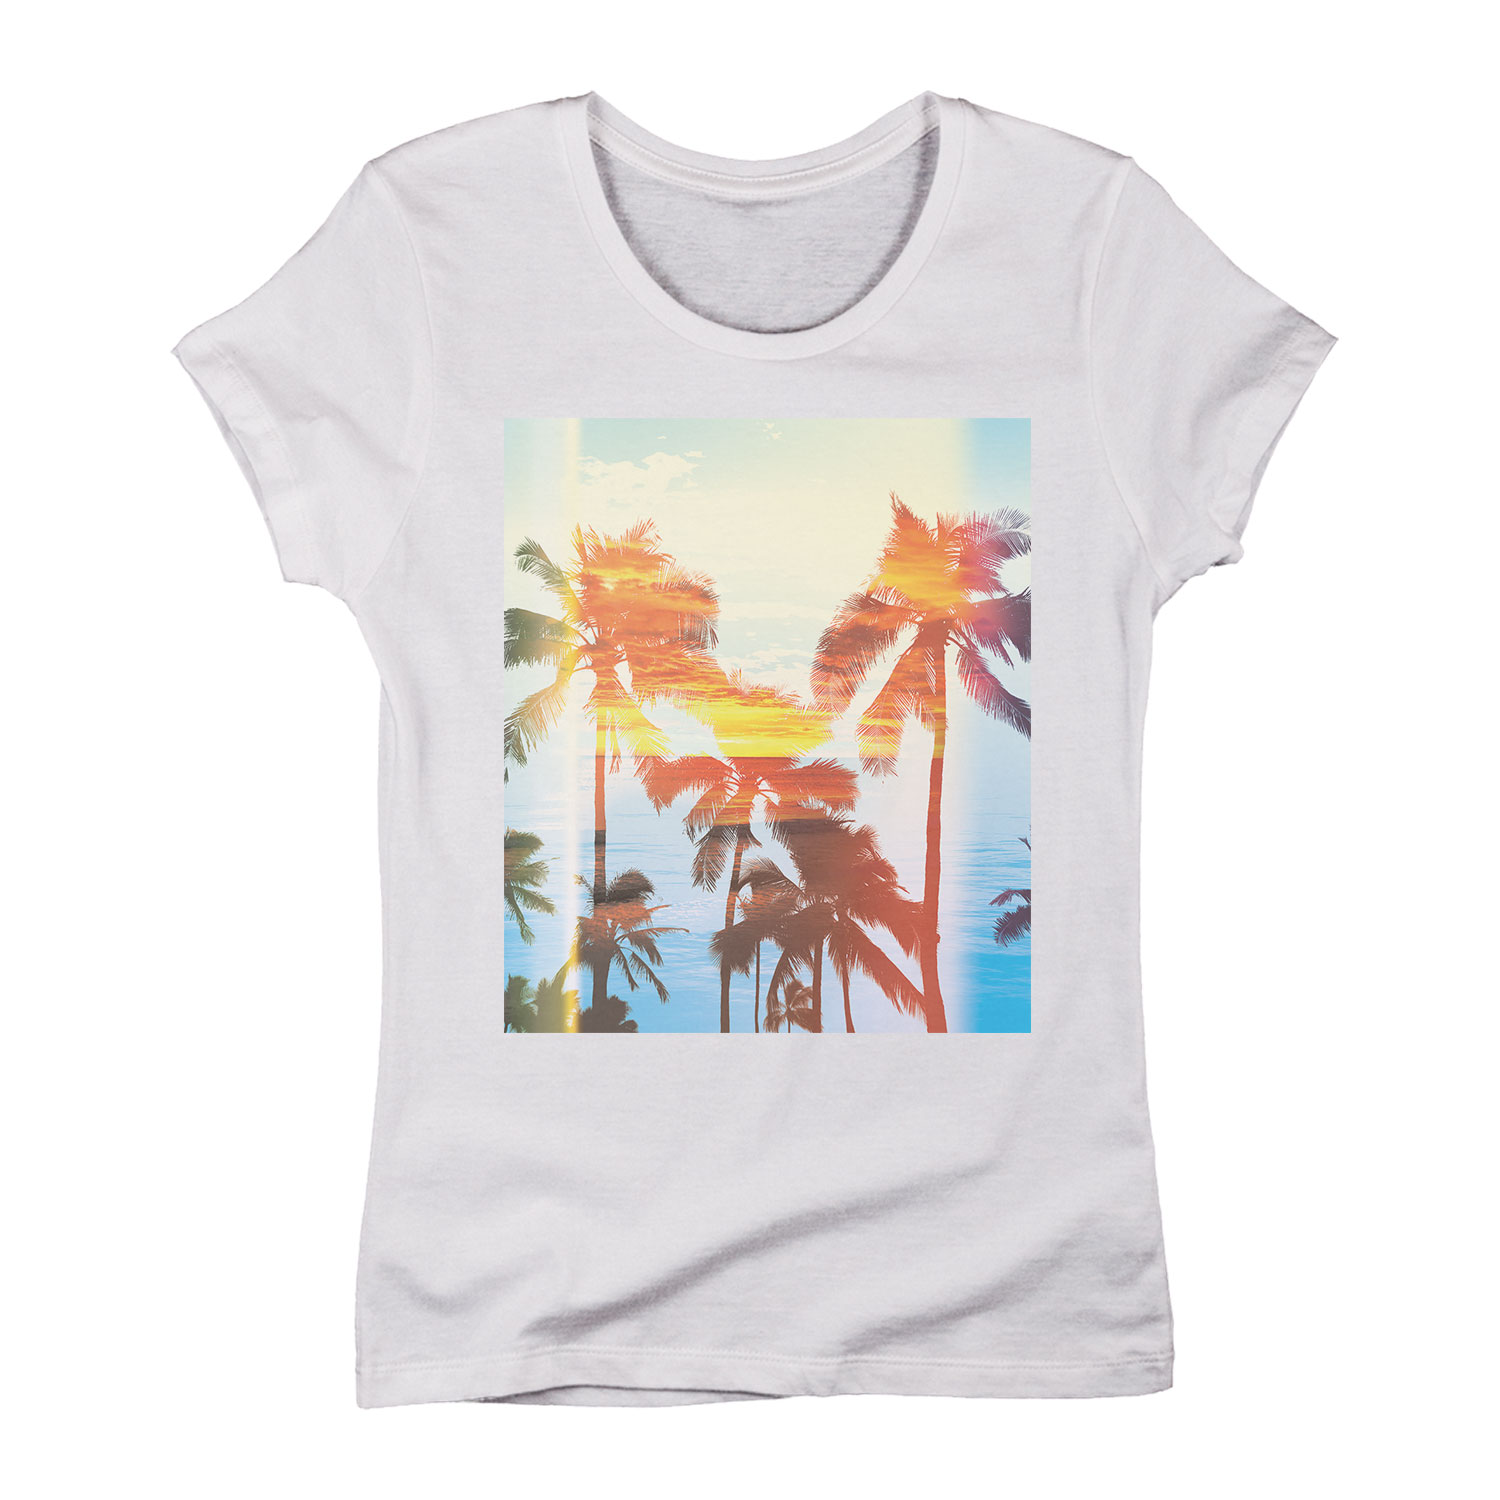 Palm Tree Sunset KORNIT WHITE SHIRT ONLY-Womens LADIES SHORT SLEEVE TEE